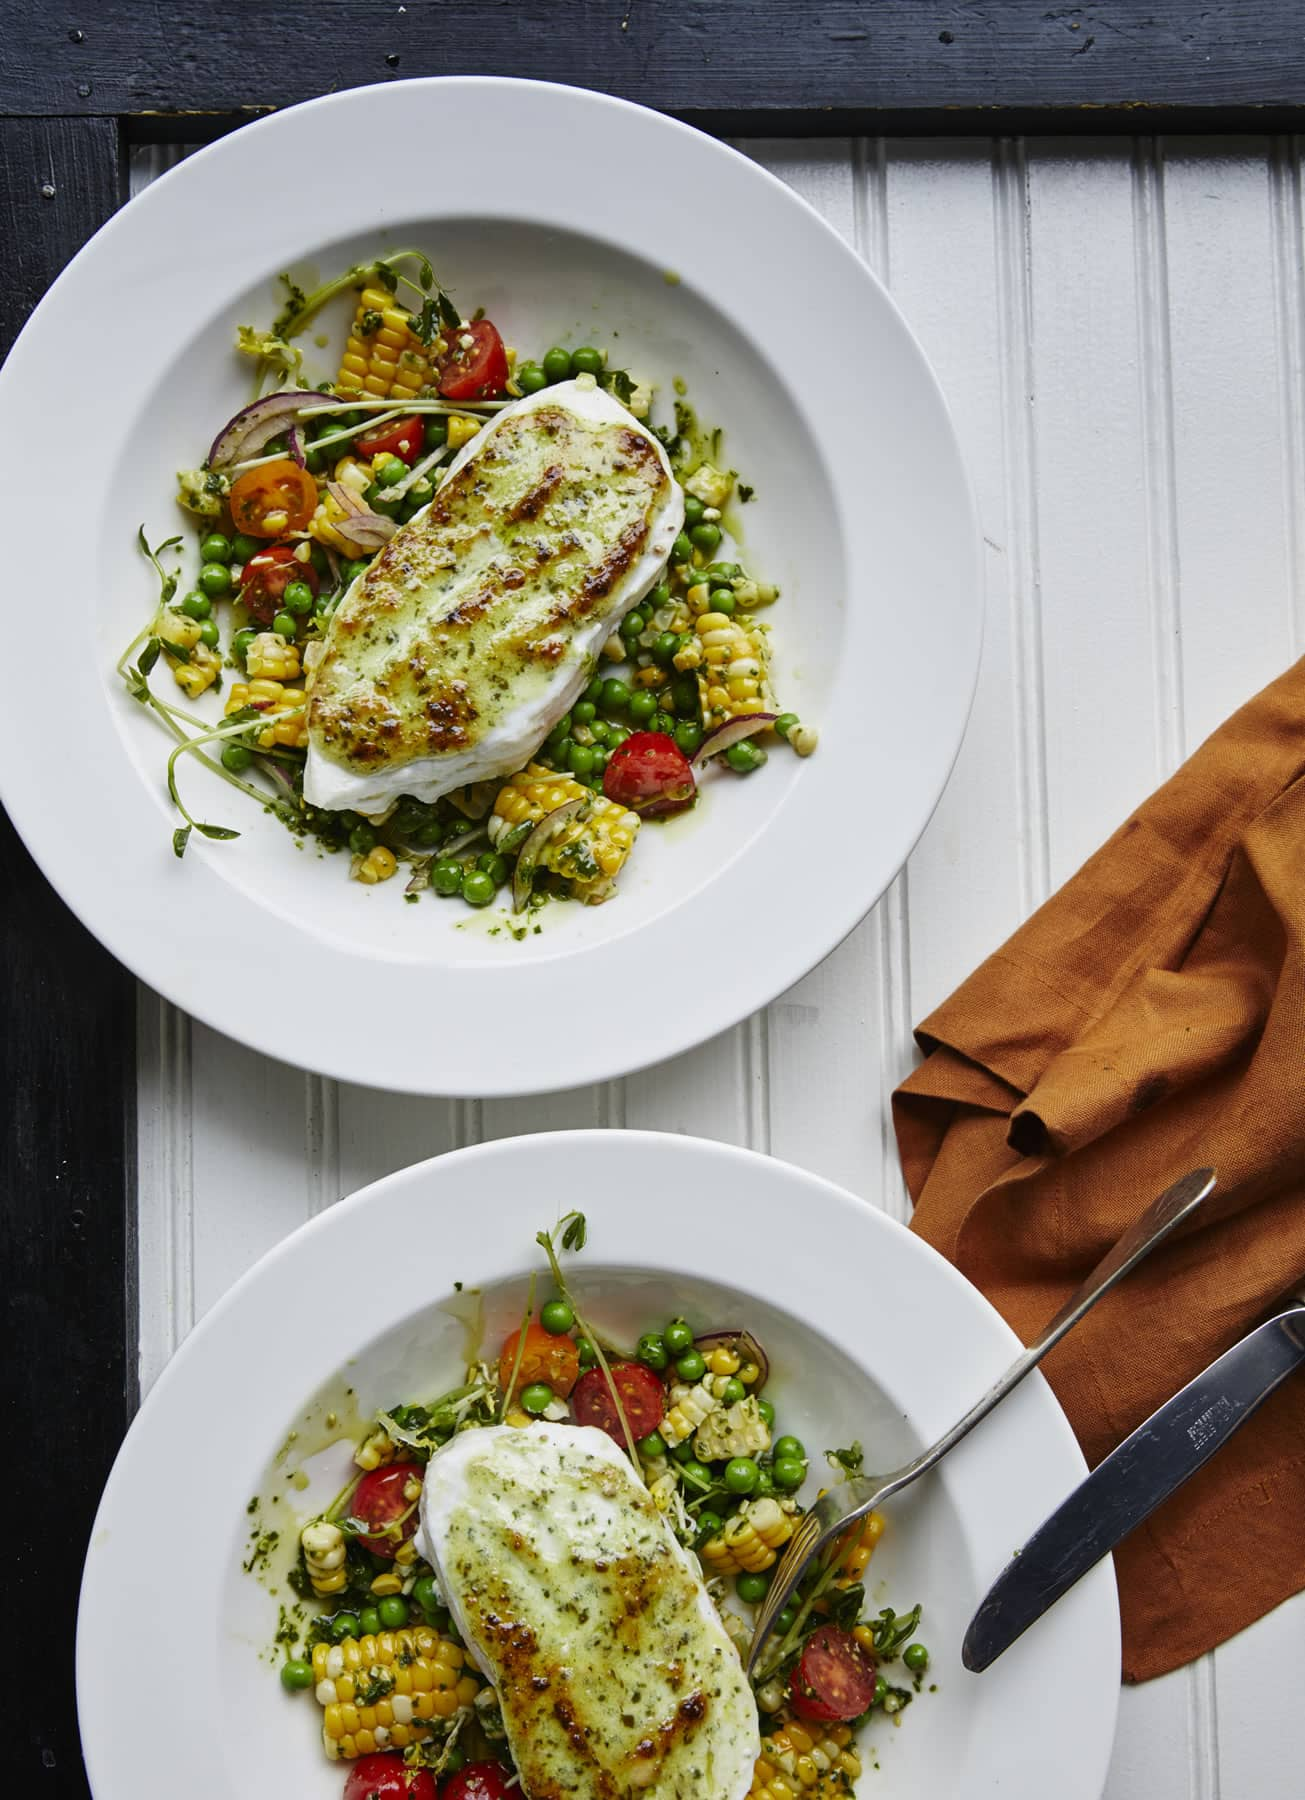 Broiled Halibut with Basil Pesto, Sweet Corn, and Pea Salad